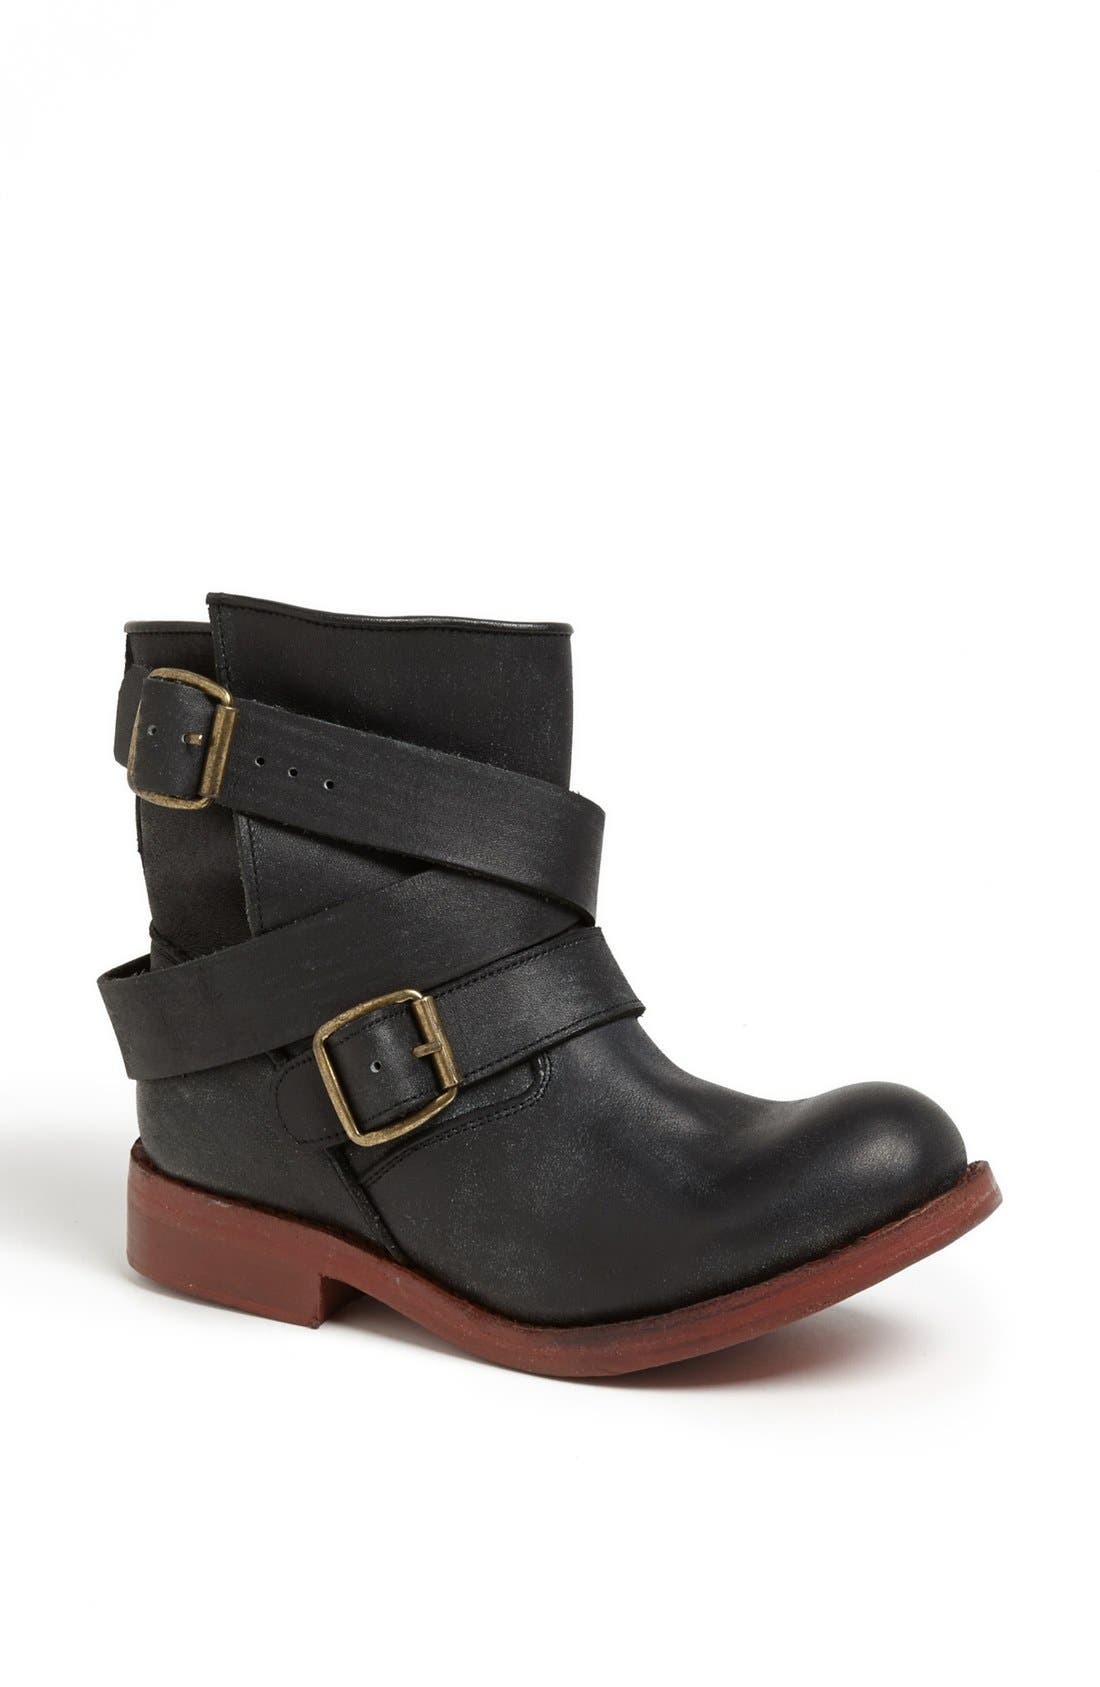 Main Image - Jeffrey Campbell 'Argus' Boot